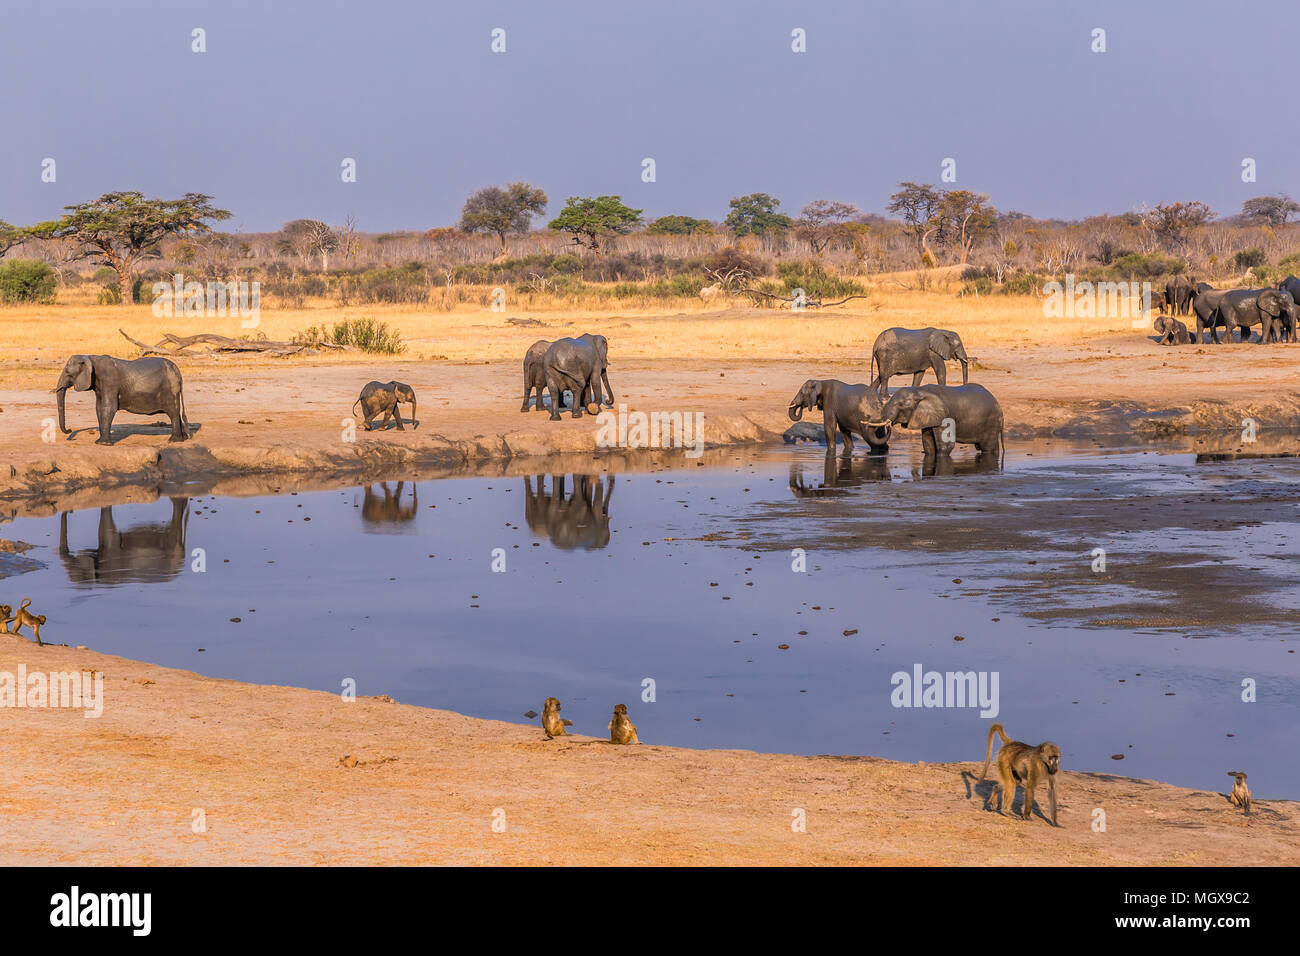 Elephants and baboons gather around a shrinking waterhole during a drought in Hwange National Park, Zimbabwe, September 9, 2016. Stock Photo